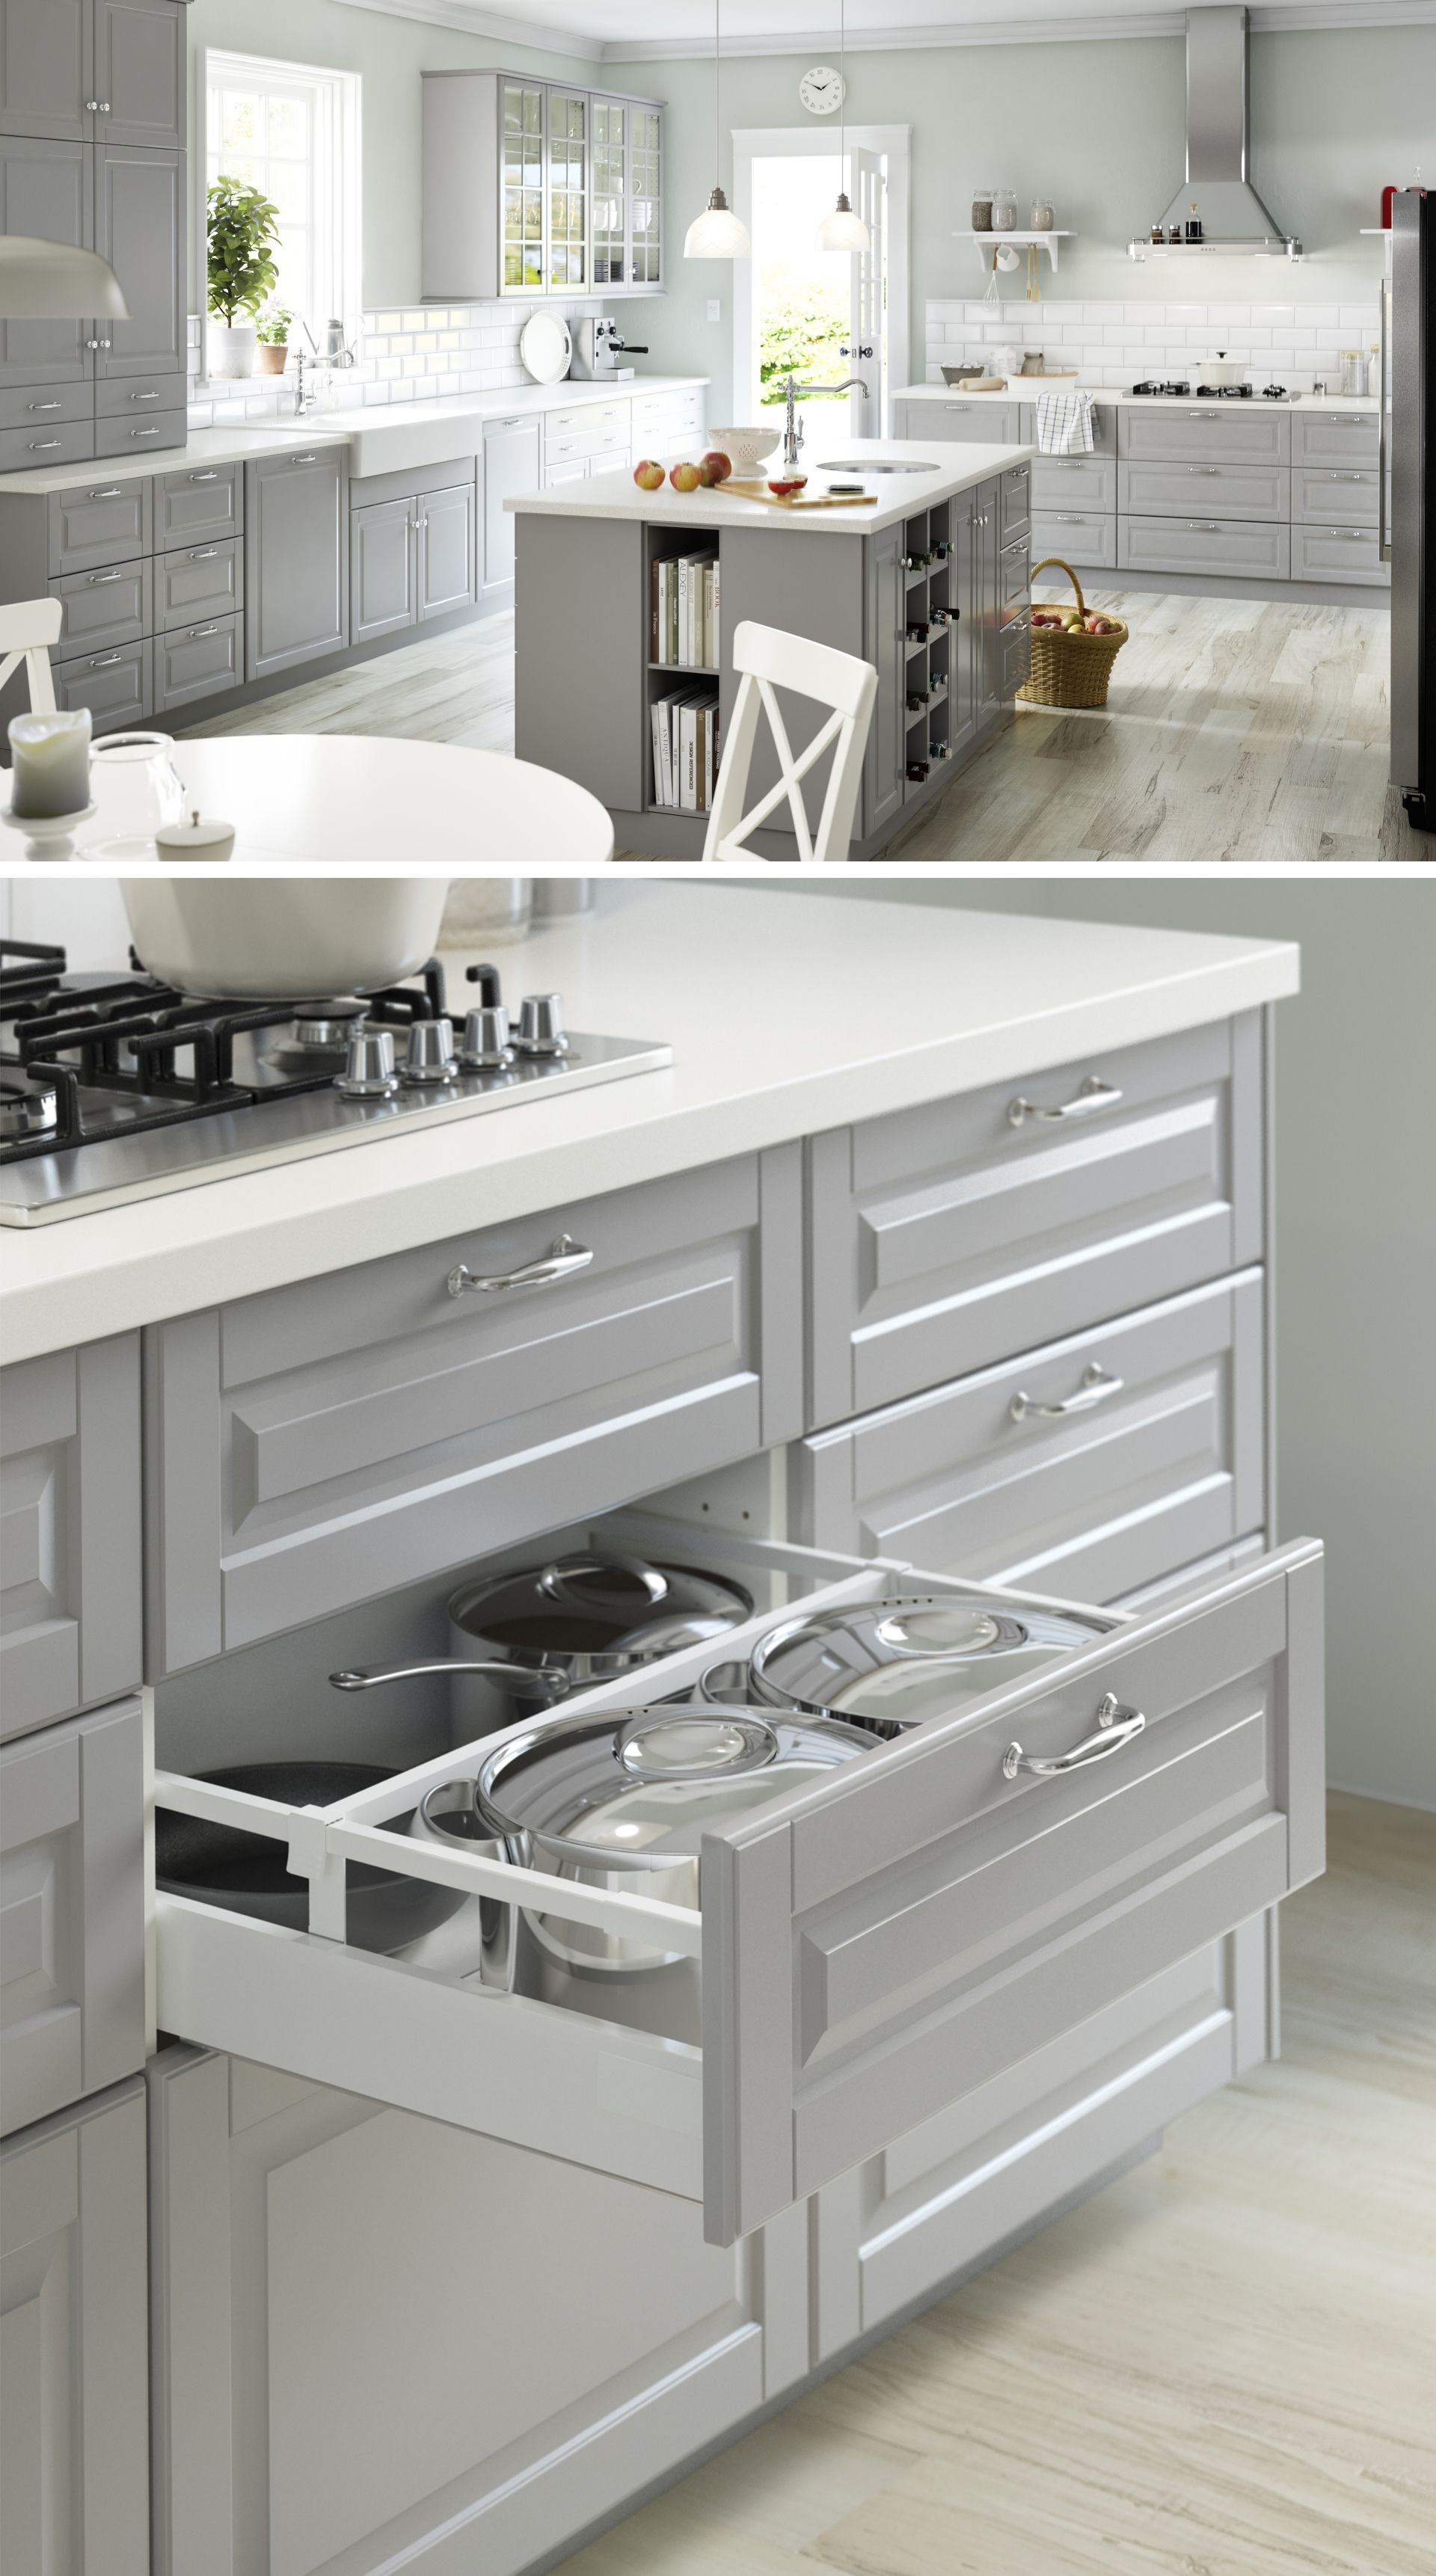 Ikea Sektion Kitchen Cabinets Stunning Kitchen Cabinets That Suit You And How You Use Your Kitchen Will Design Decoration